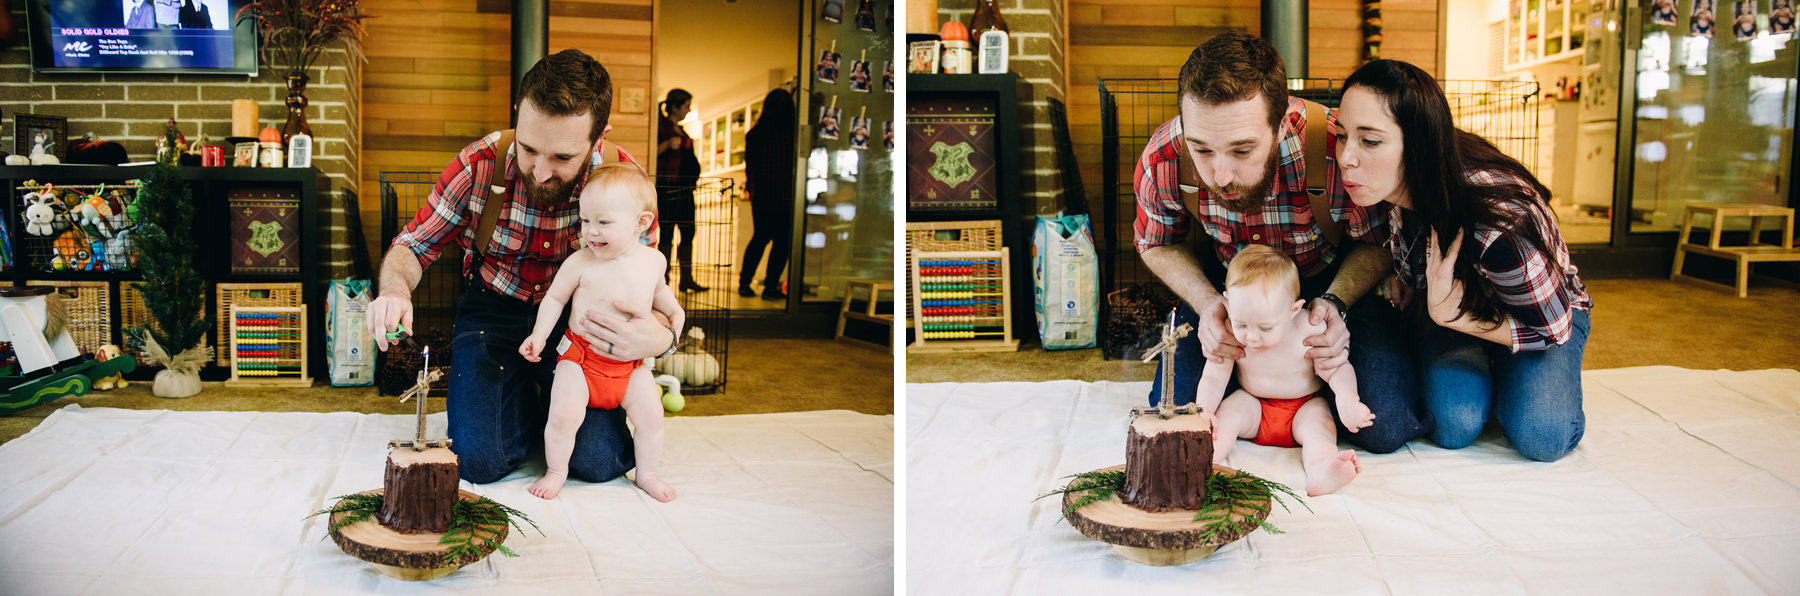 baby-first-birthday-seattle-family-photographer-9